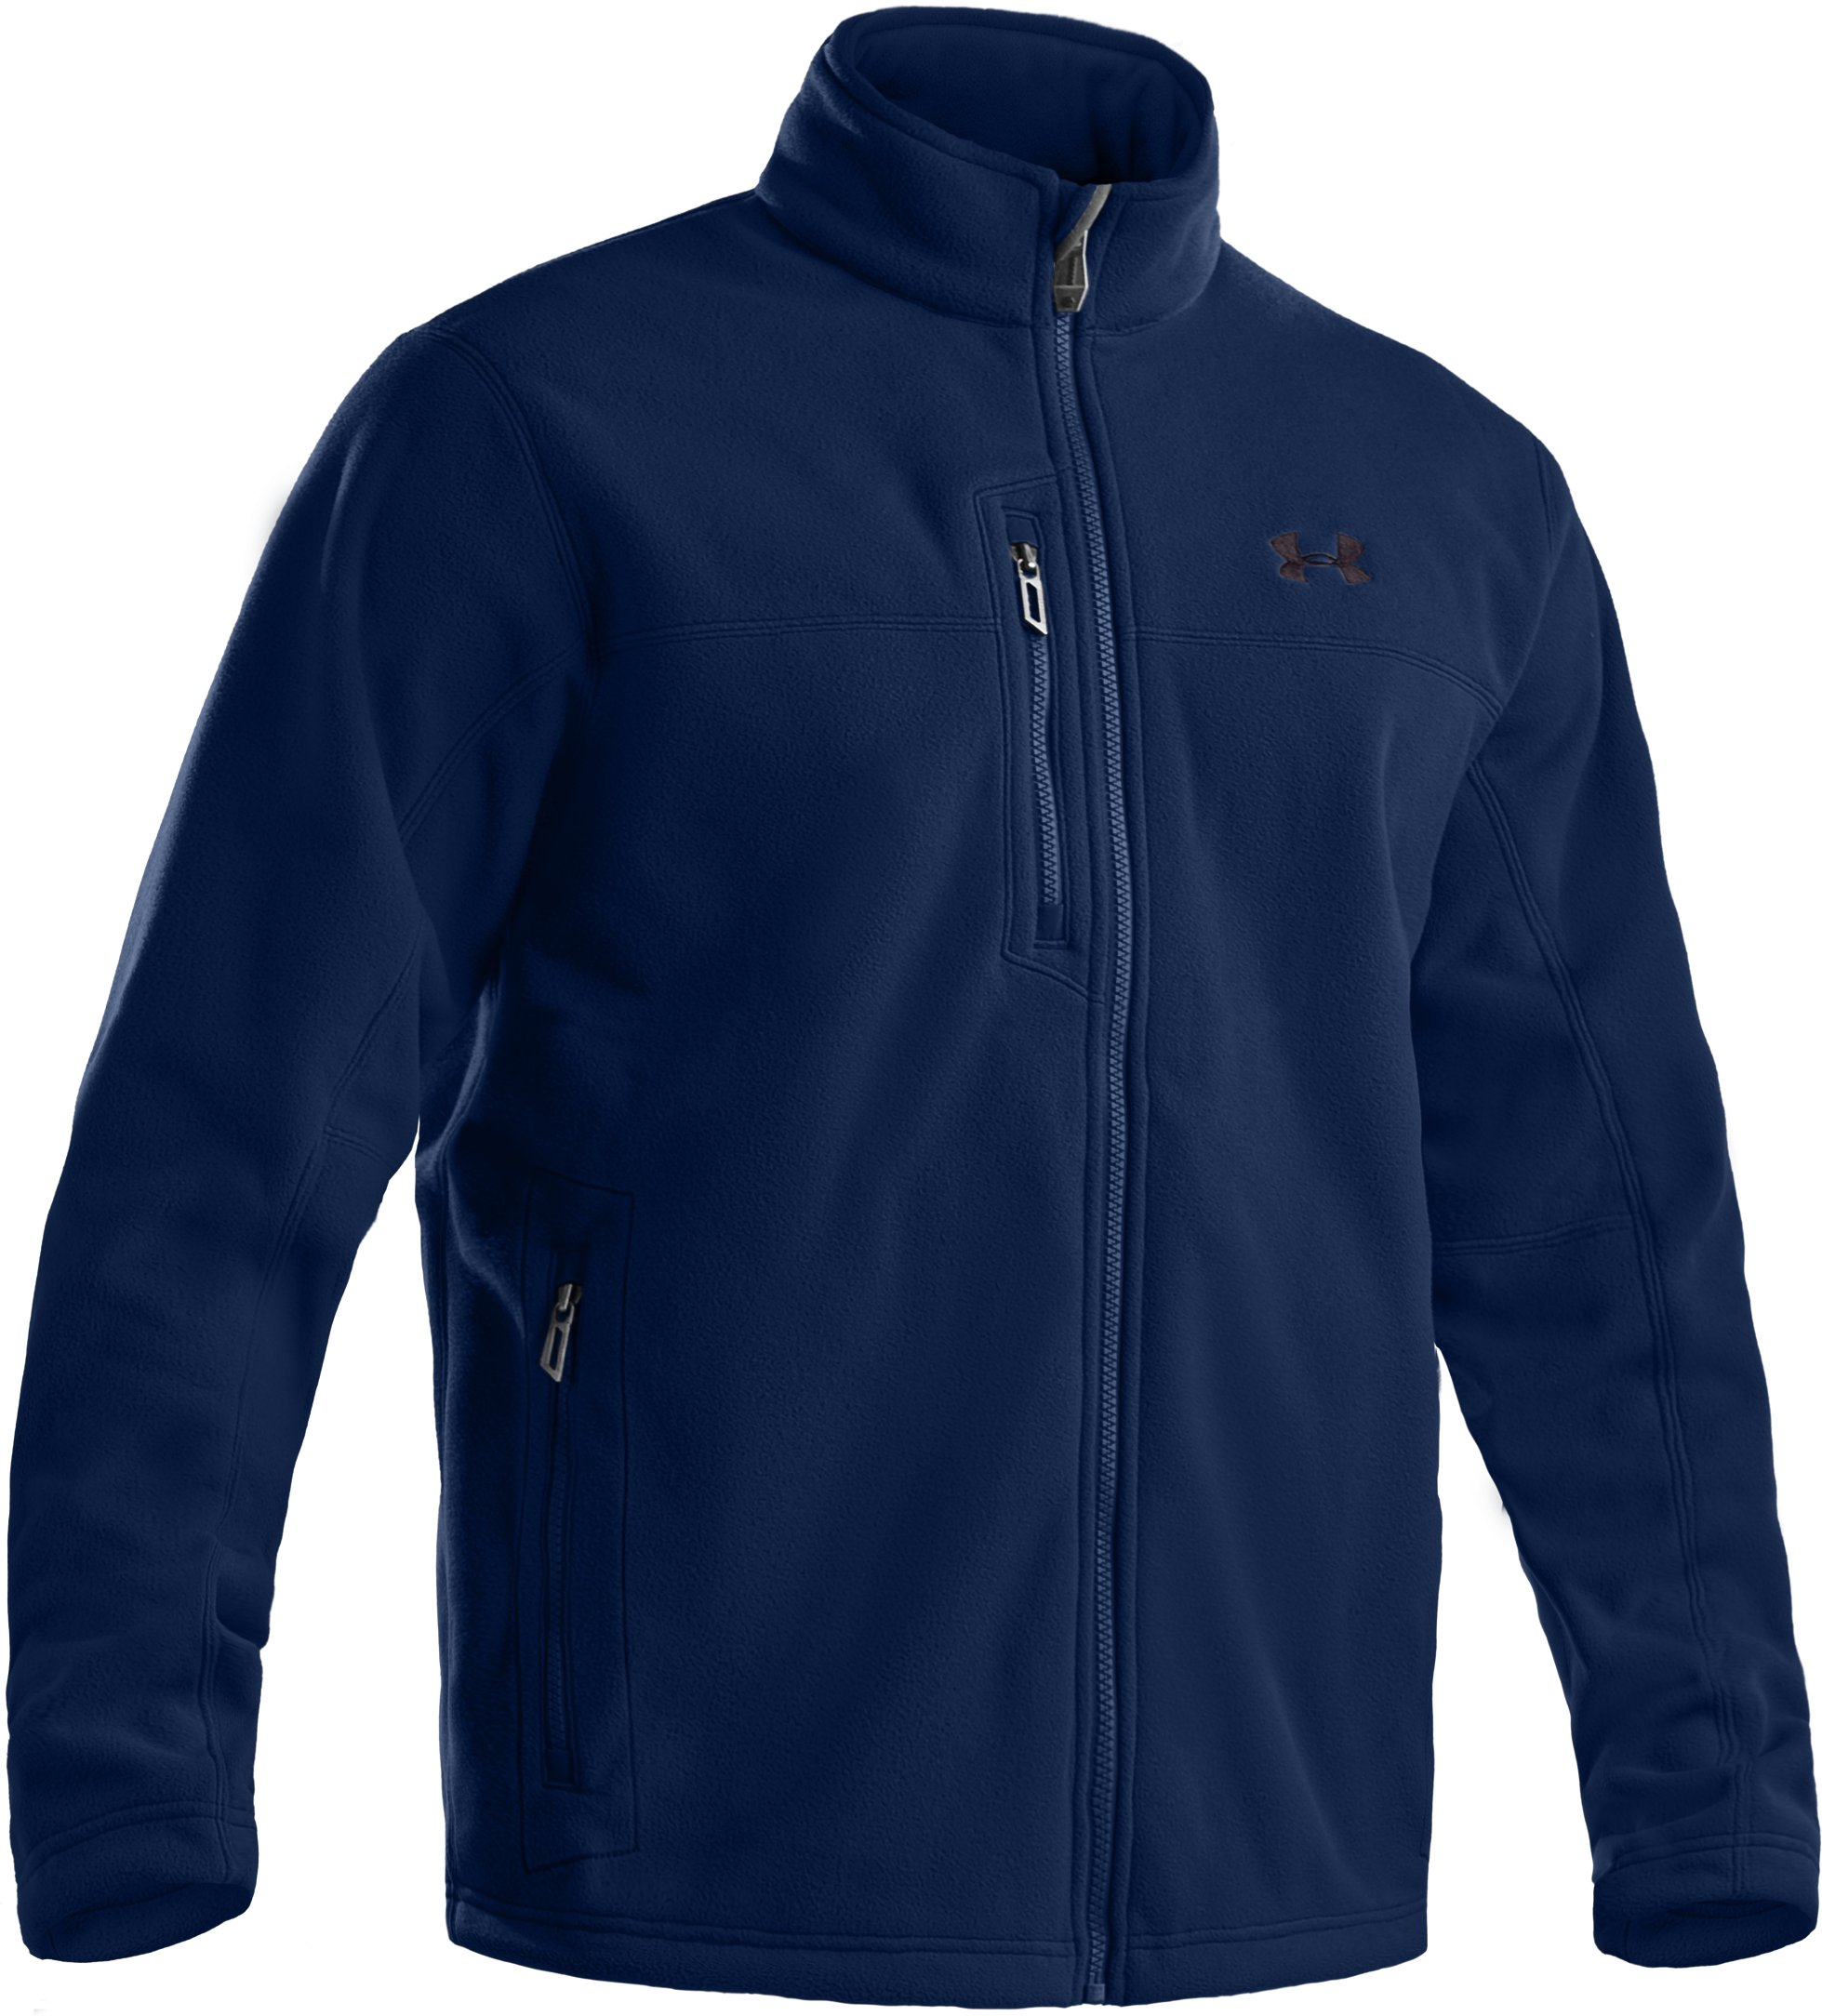 Men's Derecho II Windproof Fleece Jacket, Admiral